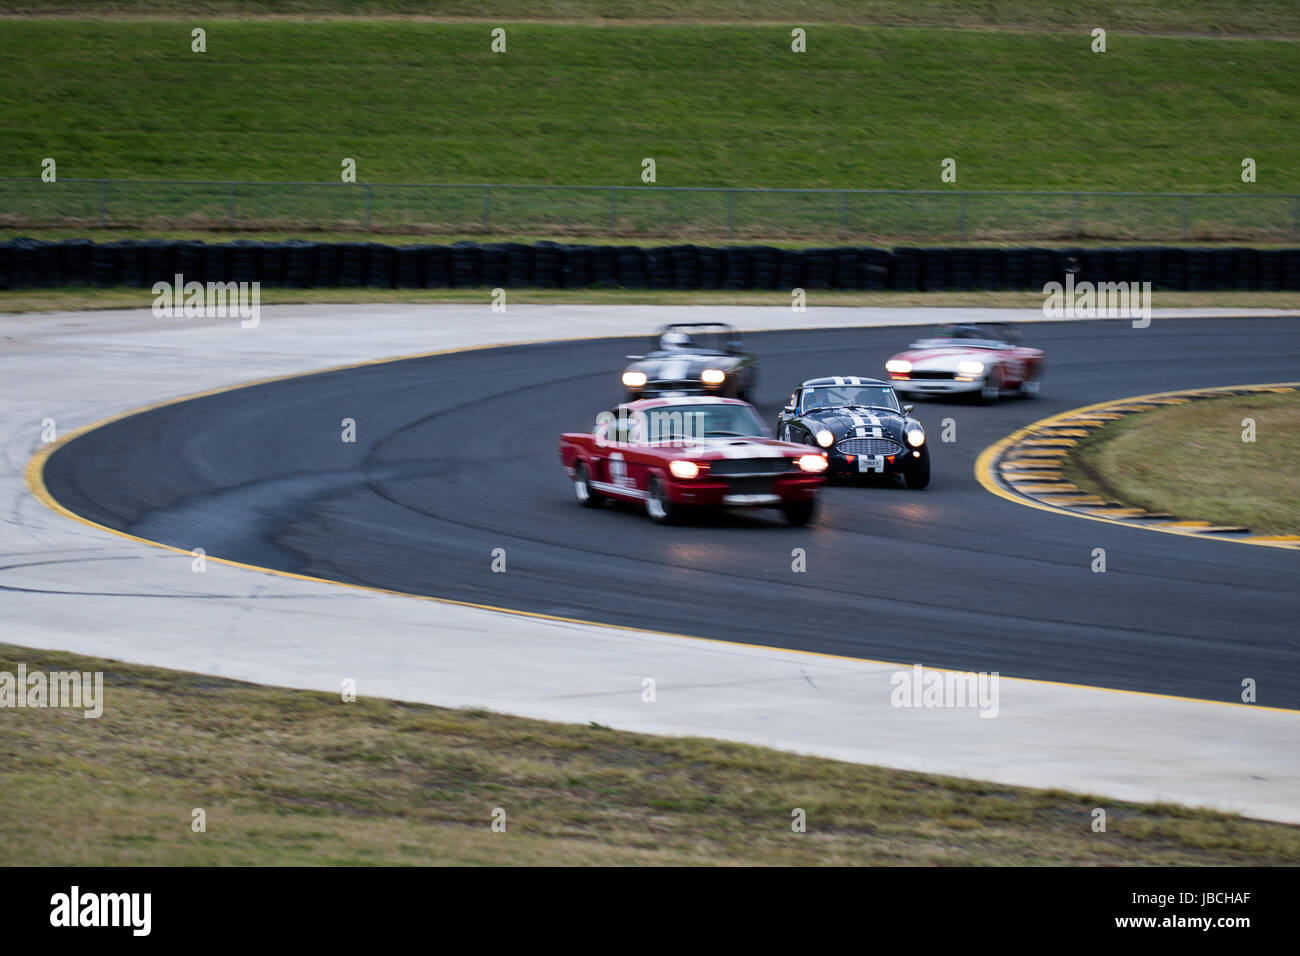 Sydney Motorsport Park, 10th June 2017.  Group S race of Geoff Pike. Anthony Bolack/Alamy Live News - Stock Image